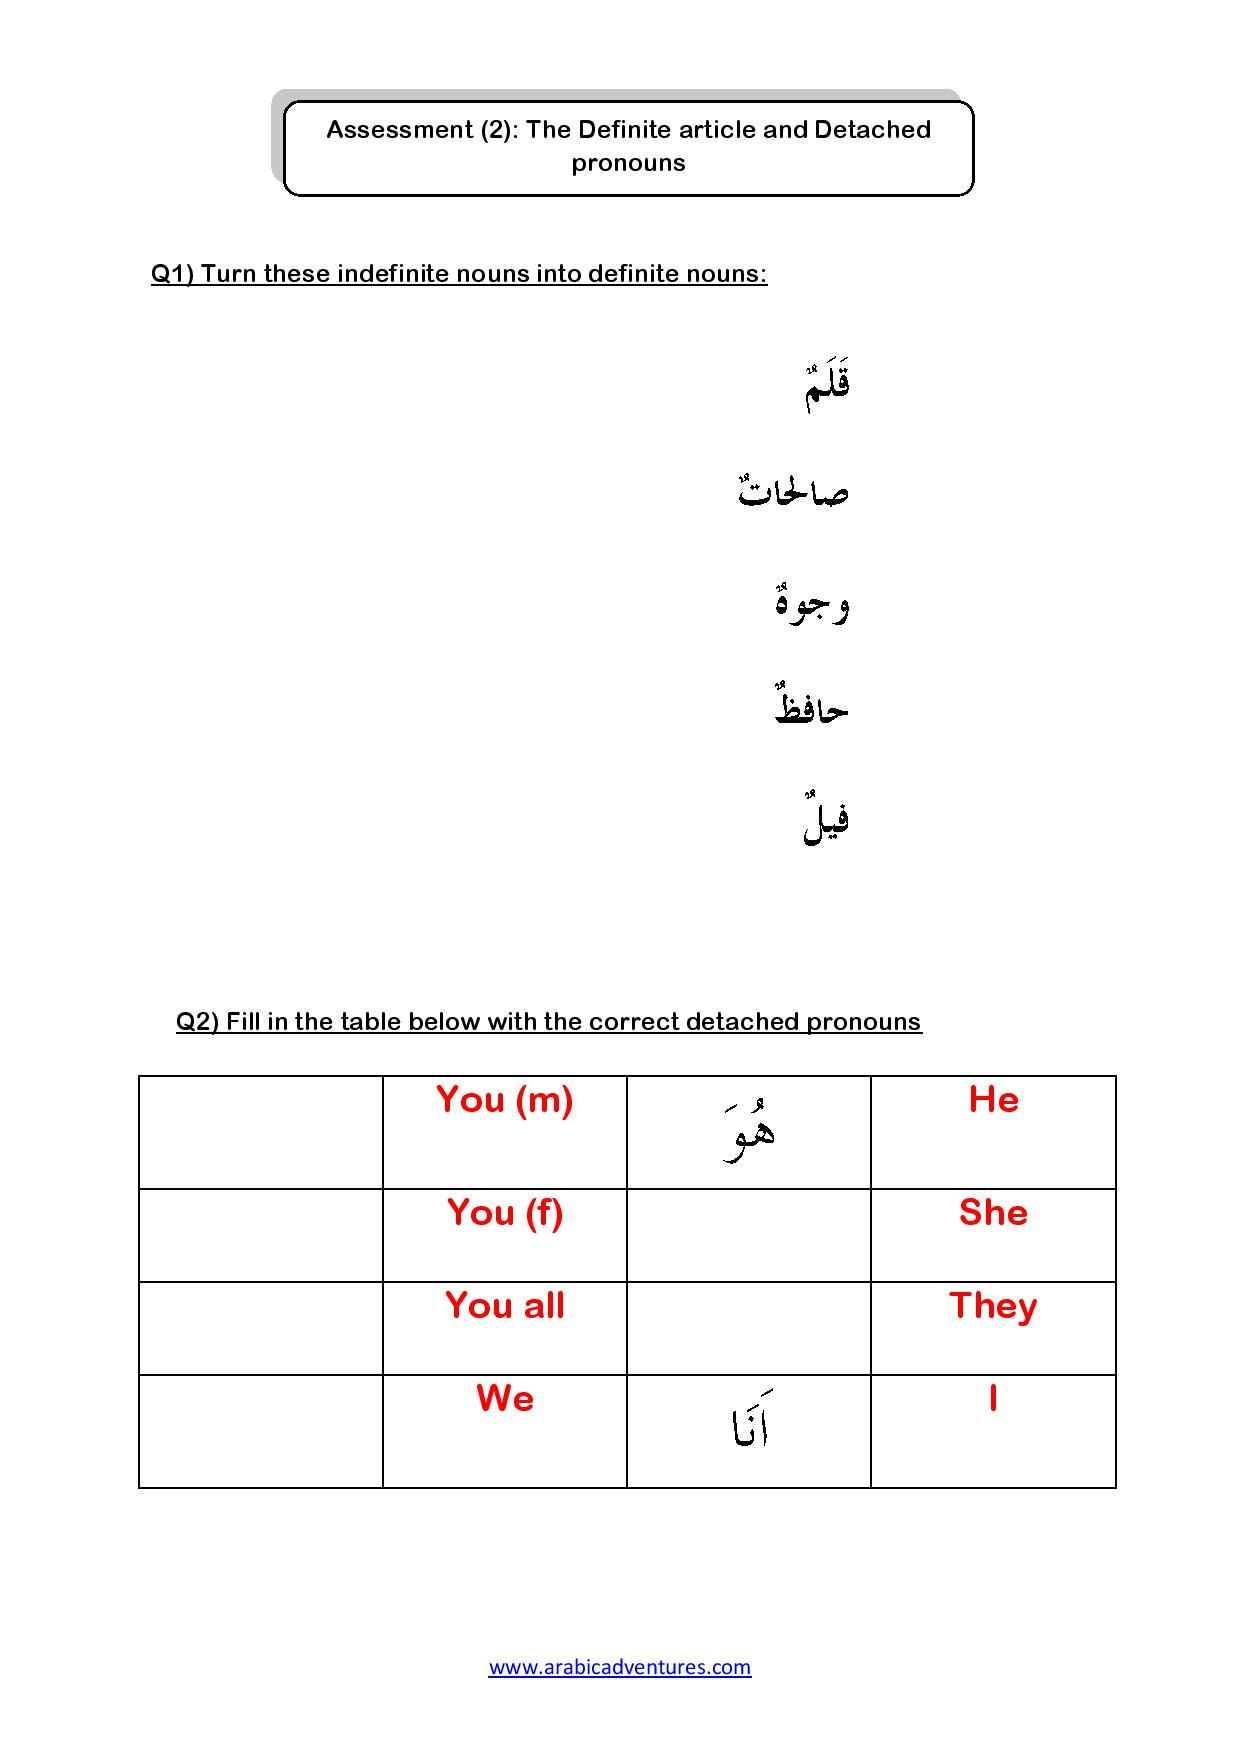 Arabic Grammar Assessment On The Definite Article And Detached Pronouns Get The Free Printable On Www Arabicadve Learning Arabic Grammar Past Tense Worksheet [ 1754 x 1240 Pixel ]